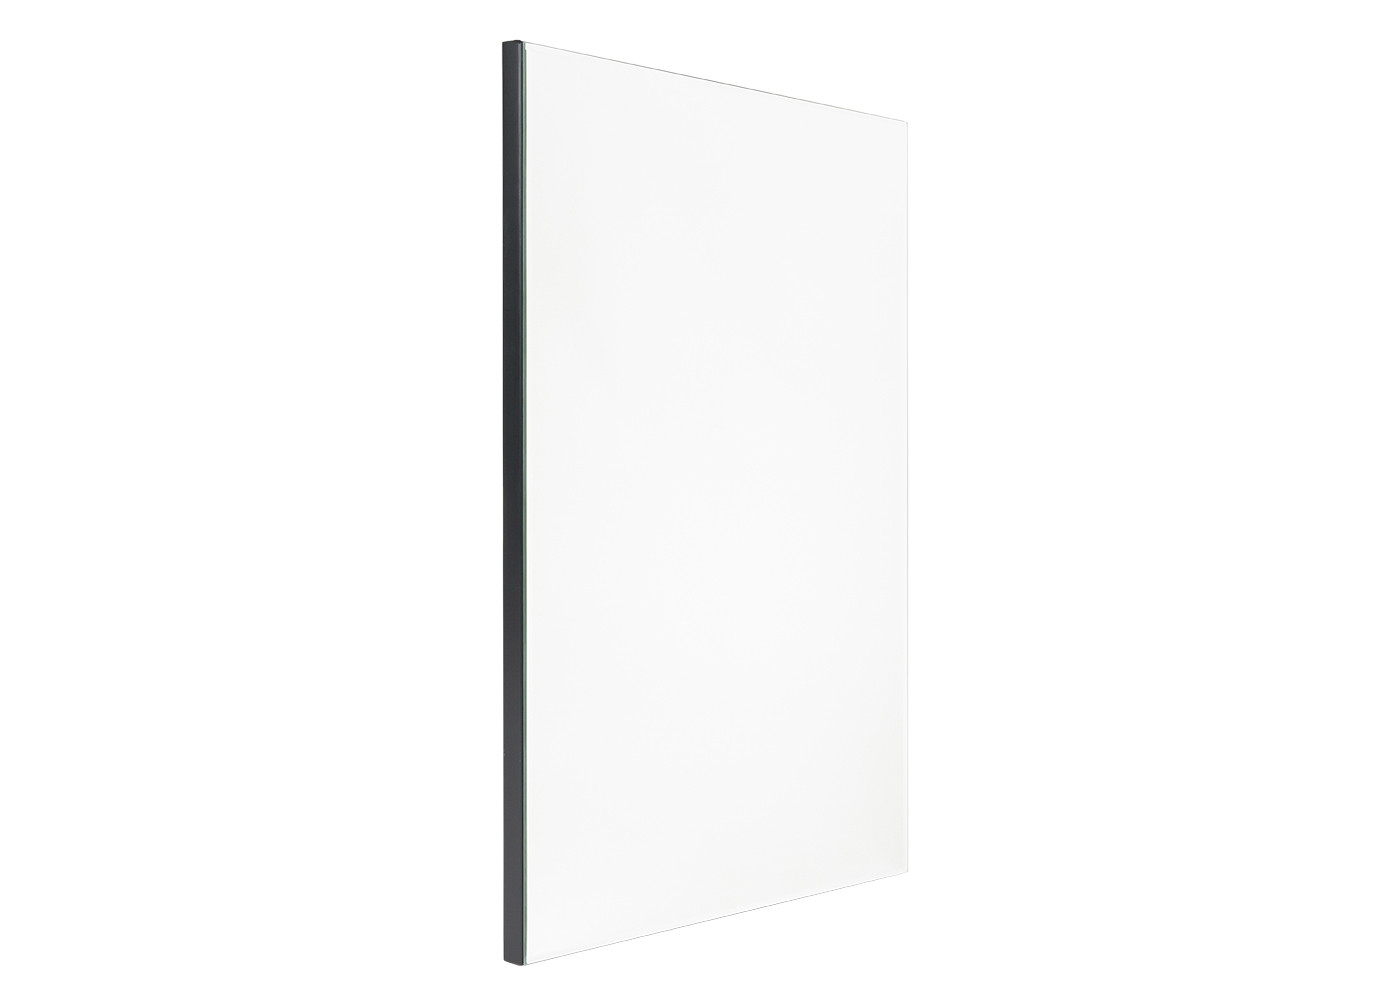 Bevelled Edge Wall Mirror Rectangular Pertaining To Rectangle Plastic Beveled Wall Mirrors (View 9 of 20)